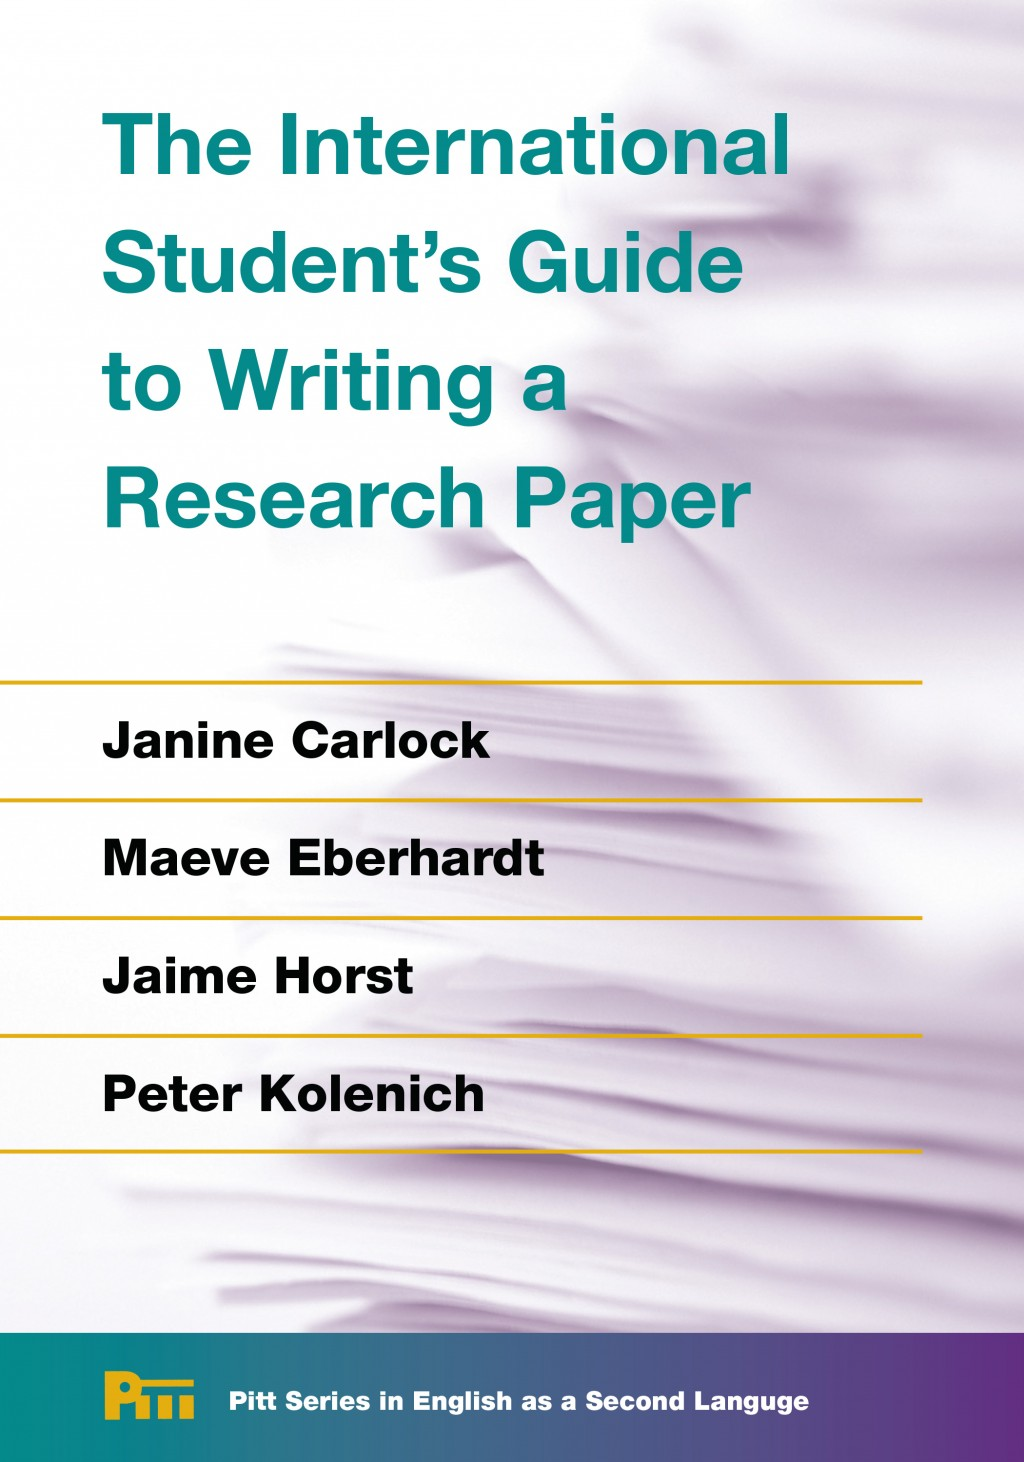 013 Writing The Research Paper Phenomenal 10 Steps In Pdf Papers A Complete Guide Large